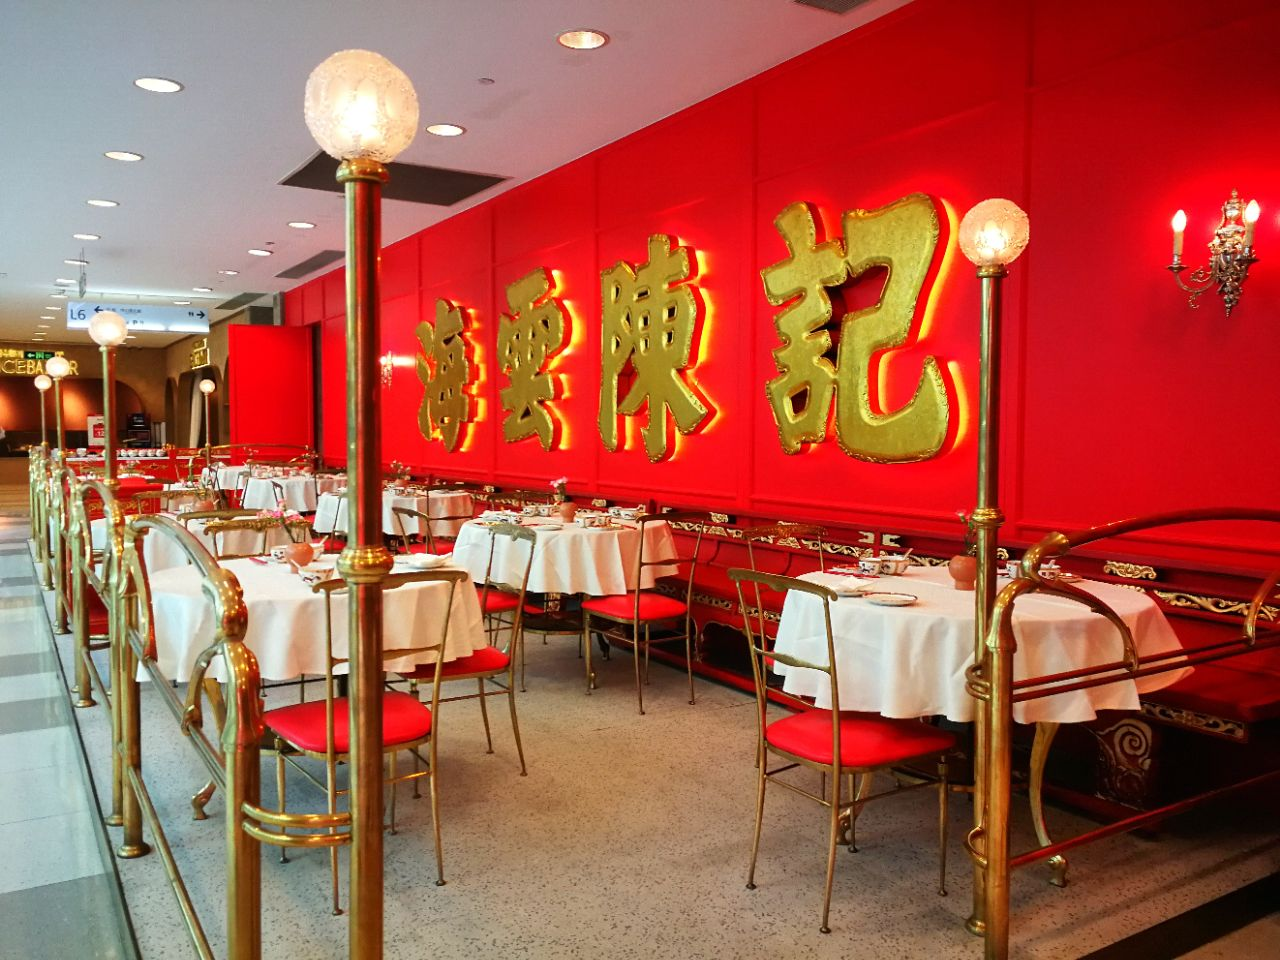 Top Things To Do Popular Attractions Restaurants Hotels